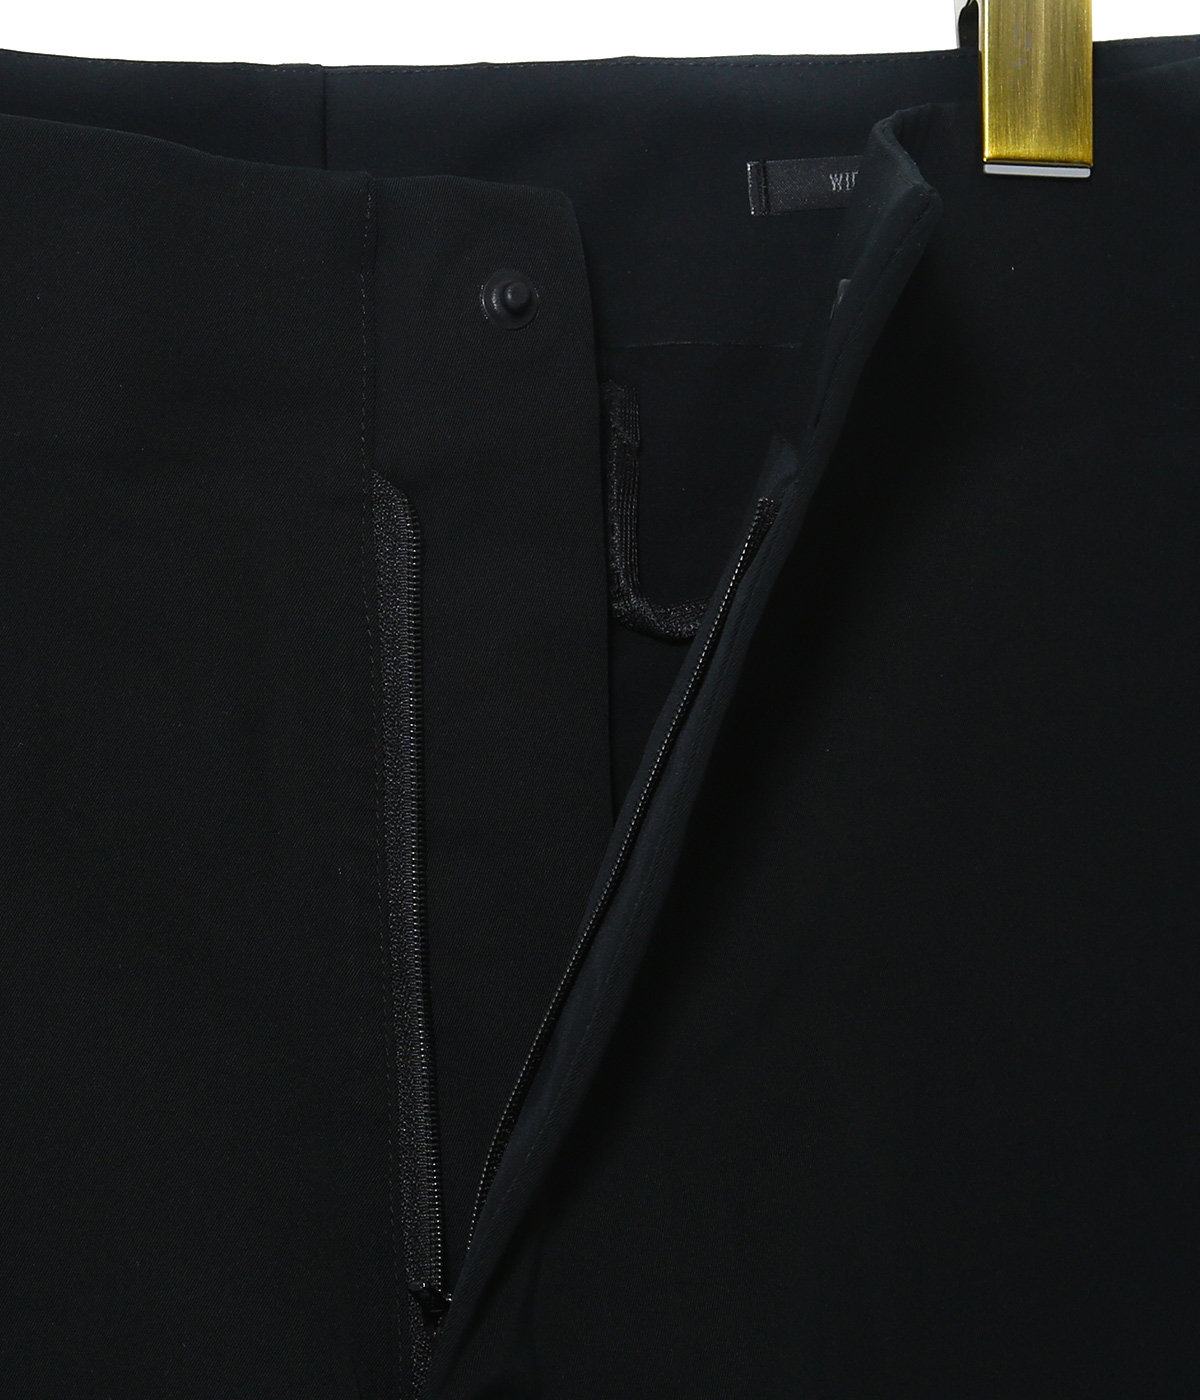 HIGH STRETCH PANTS WIDE TAPERED FIT